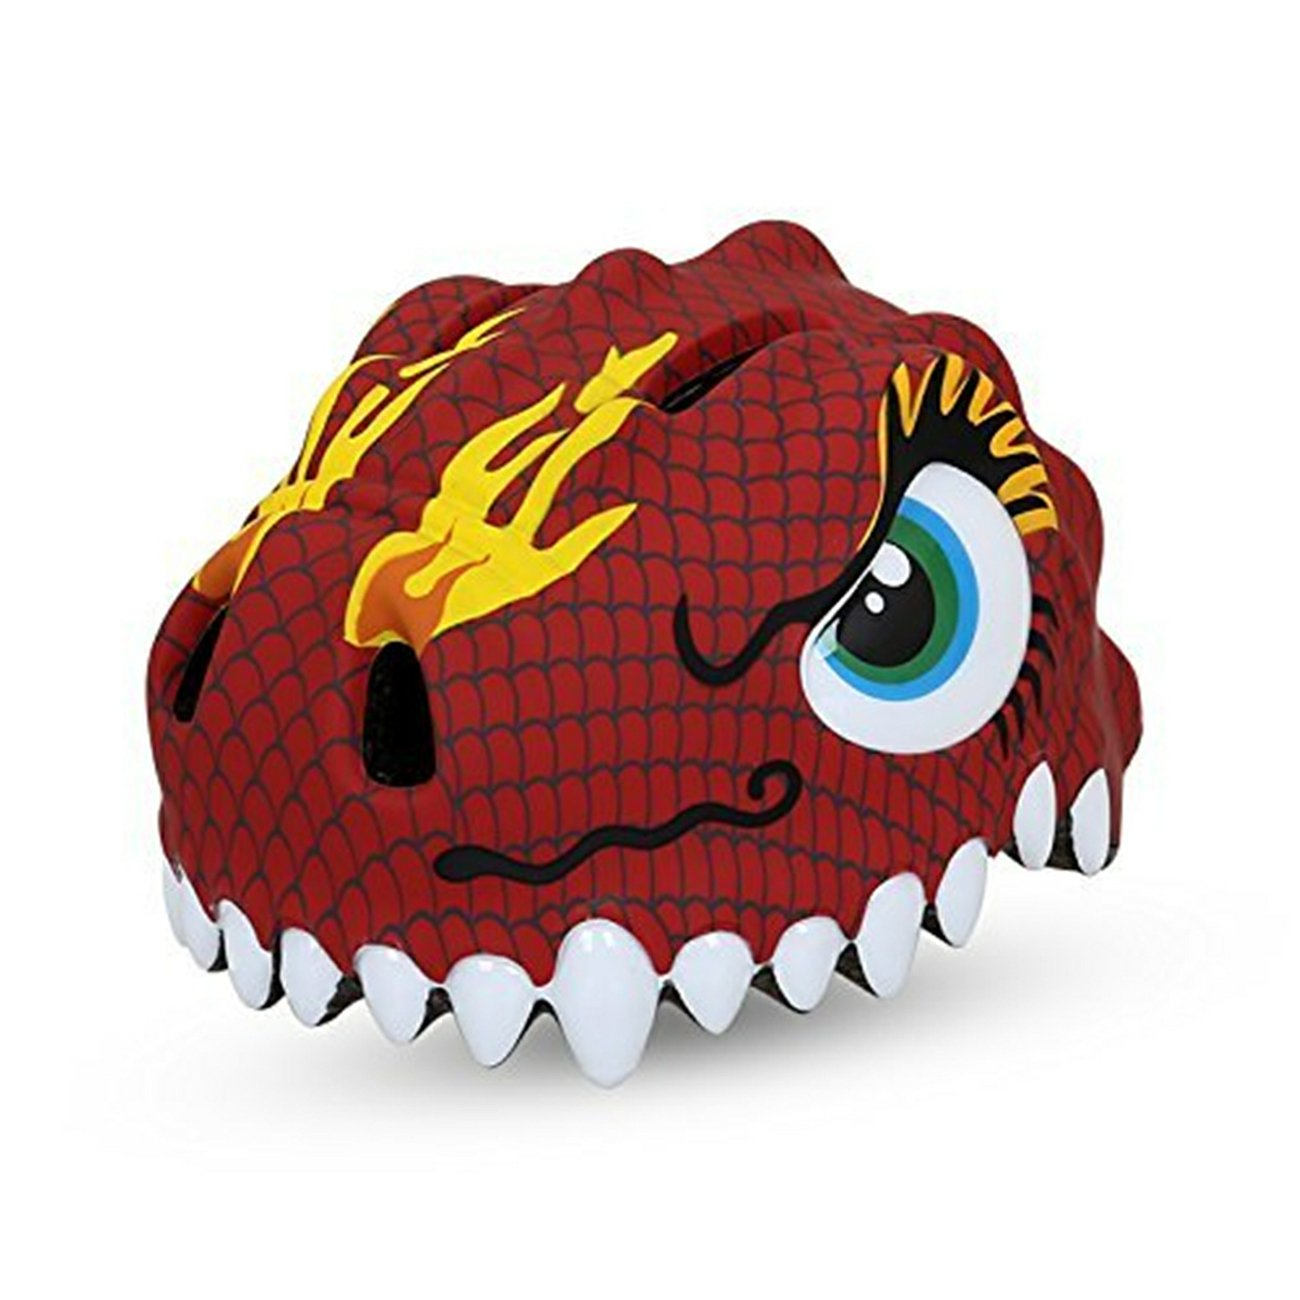 Dinosaur Red Design Bicycle Cycle Cycling Bike Helmets Protective Gear for Toddler Child Children Kids Safety Protection,Ultralight Breathable Sport Bike Helmet for Youth Boy Girl Student Pupil